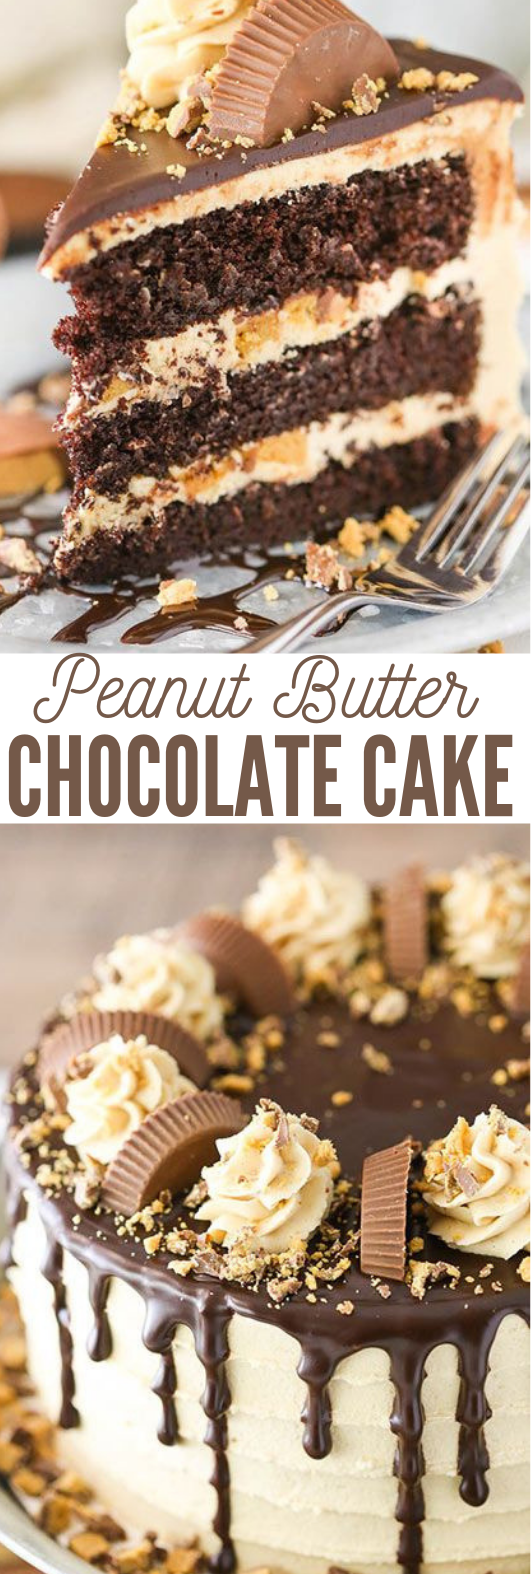 PEANUT BUTTER CHOCOLATE LAYER CAKE #cake #butter